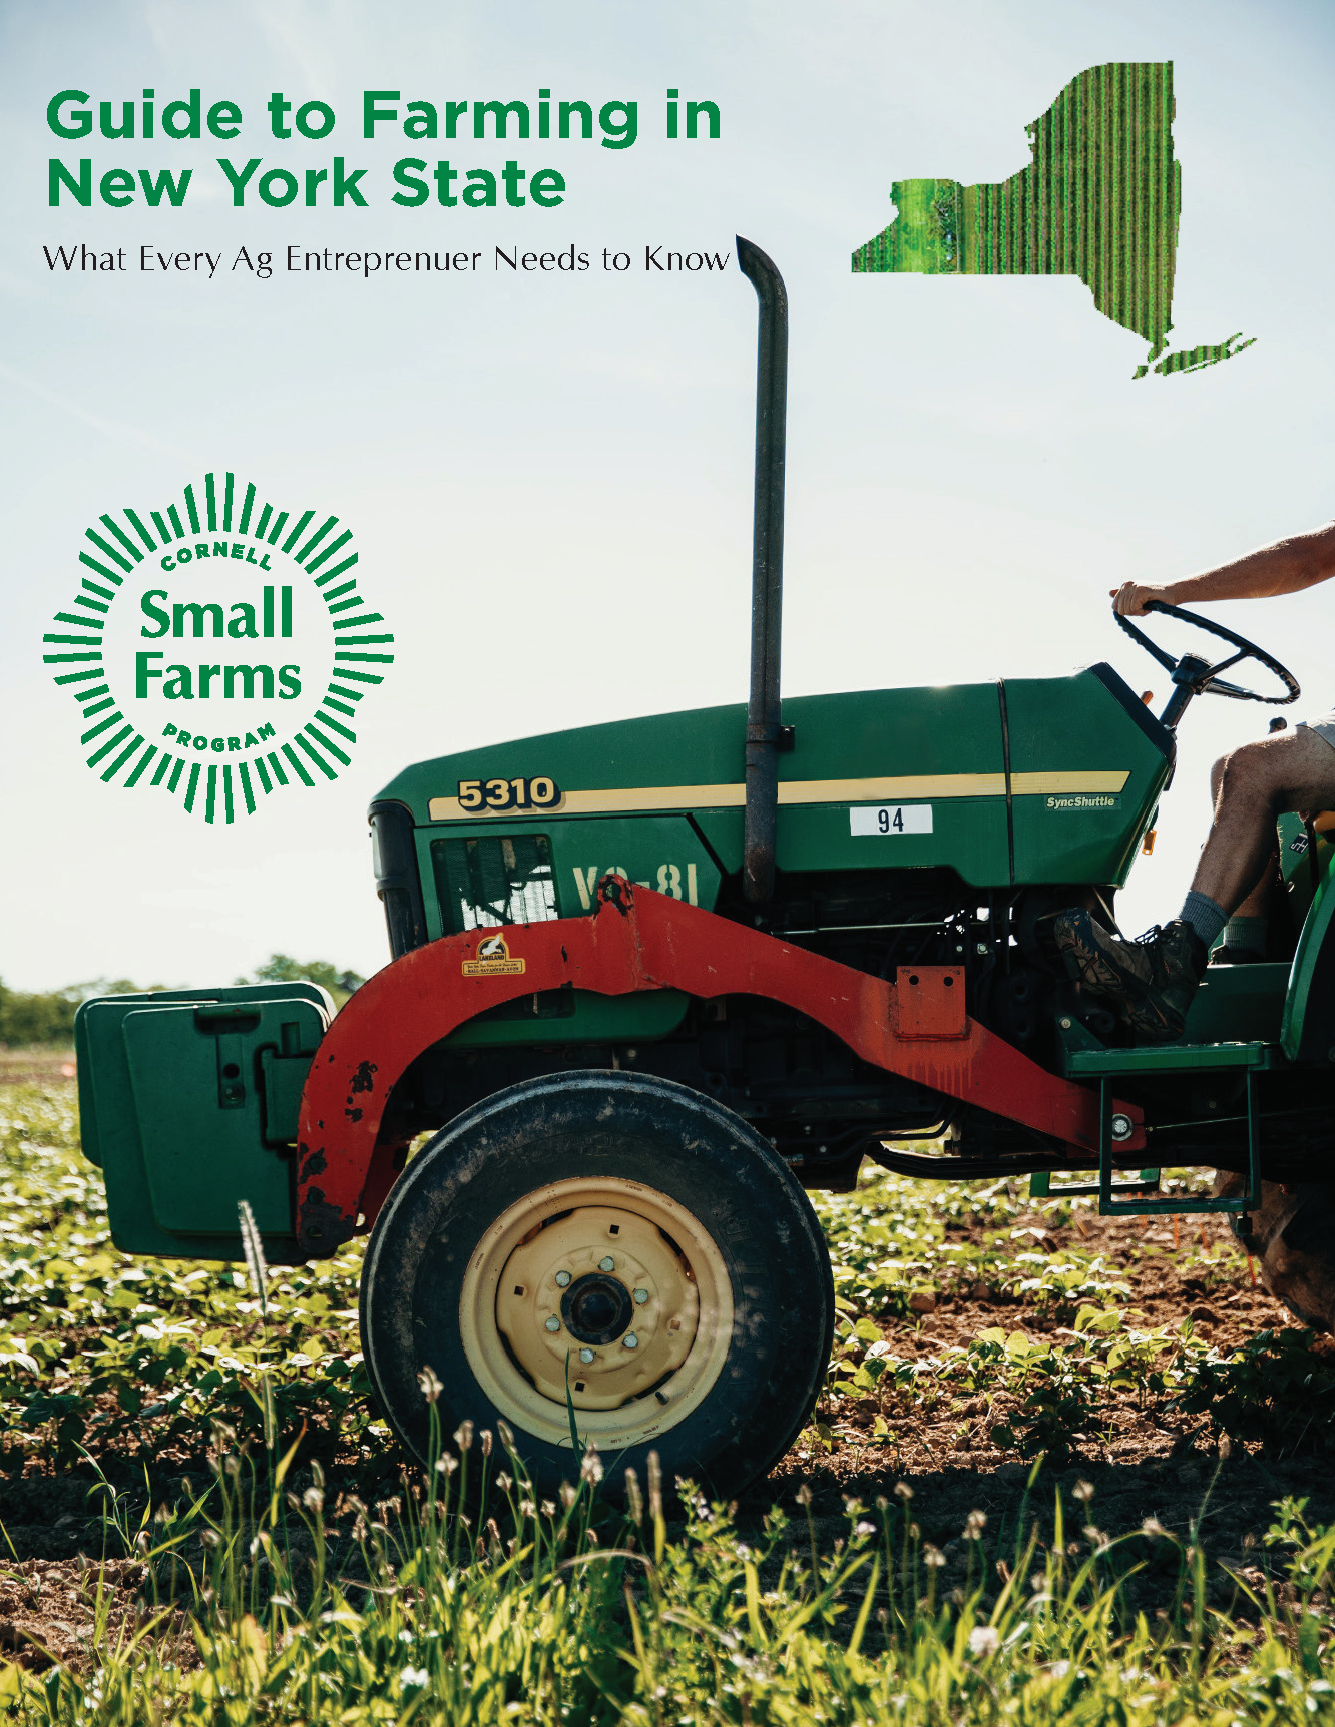 2021 Guide to Farming cover